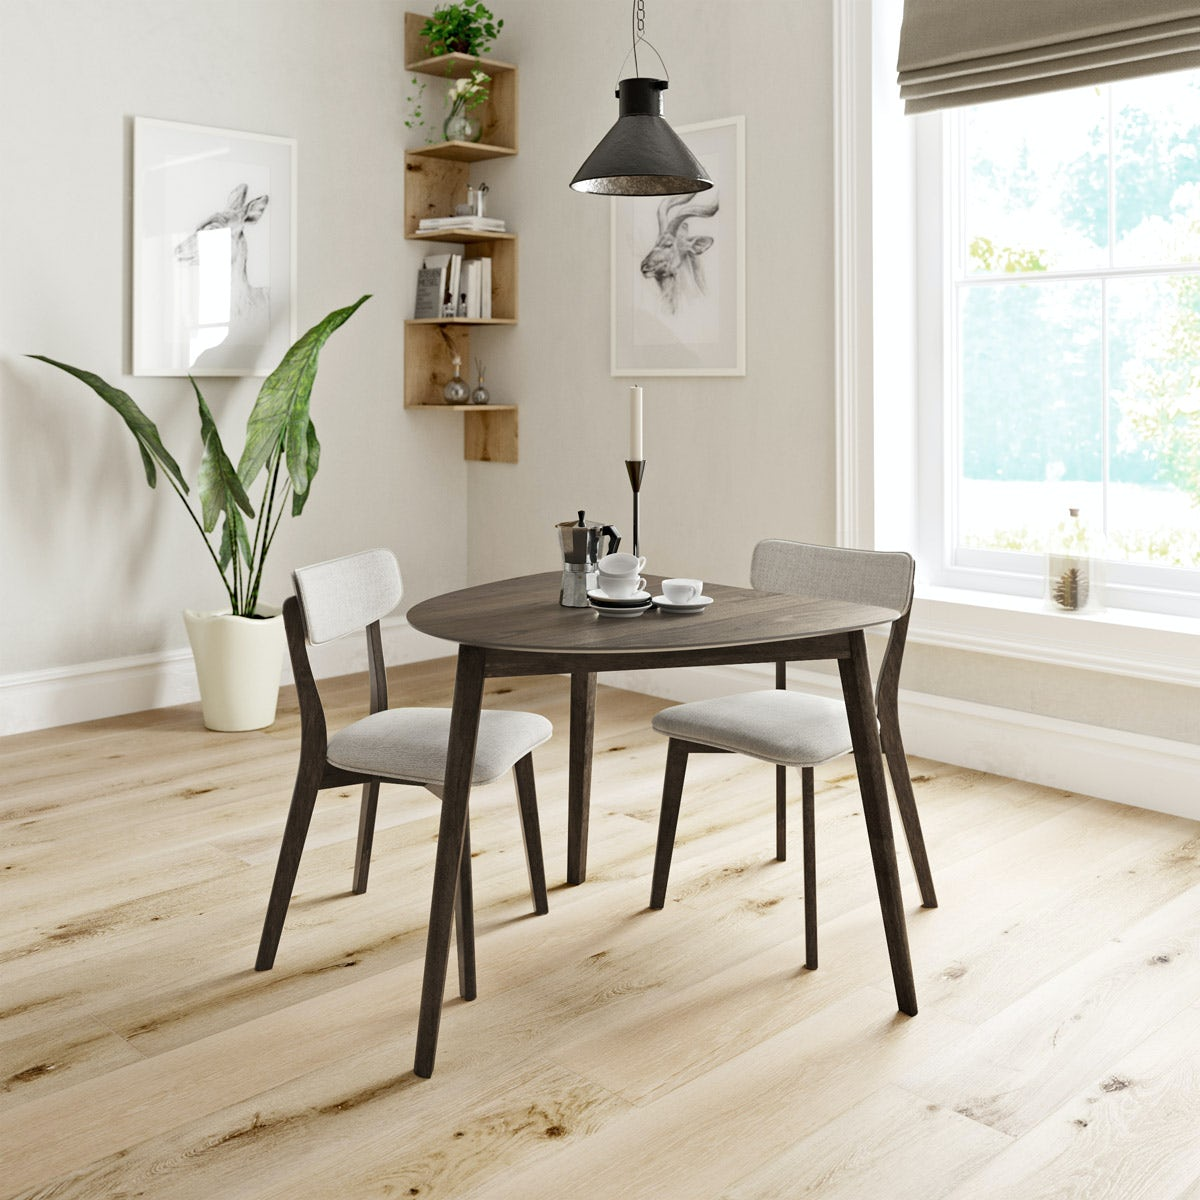 Harrison Walnut Table with 2x beige chairs